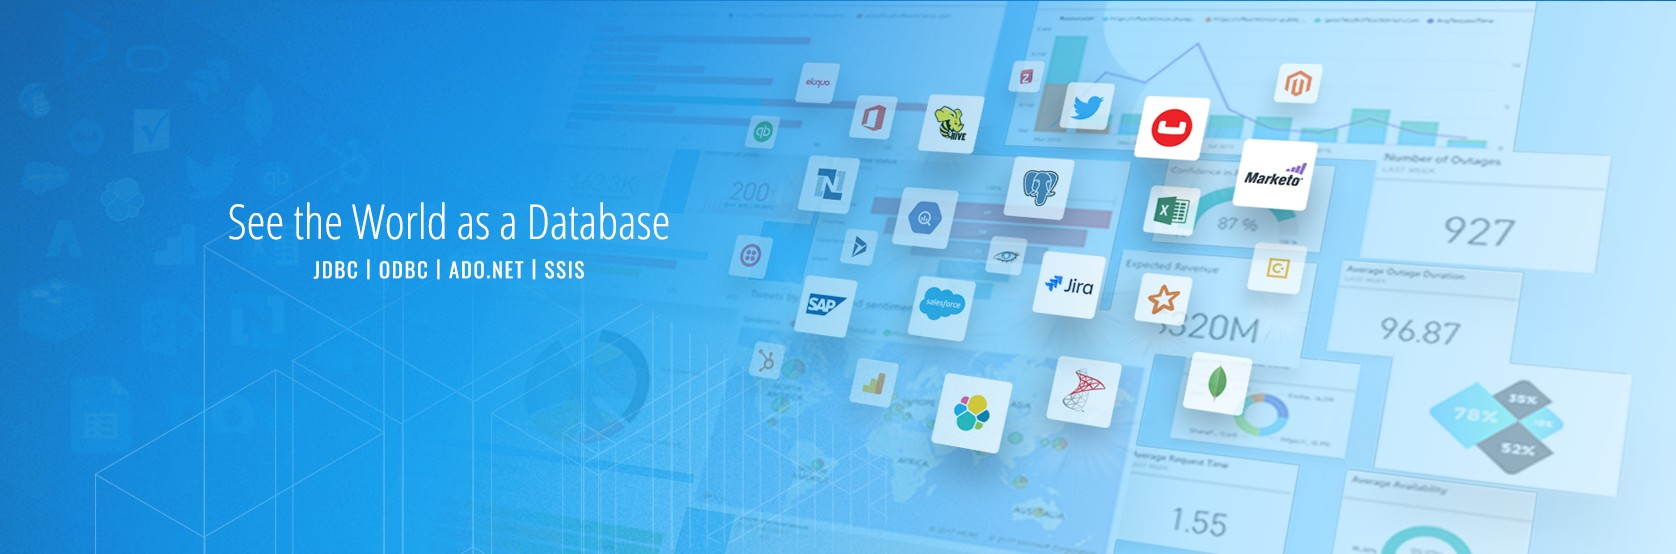 CData Software | LinkedIn